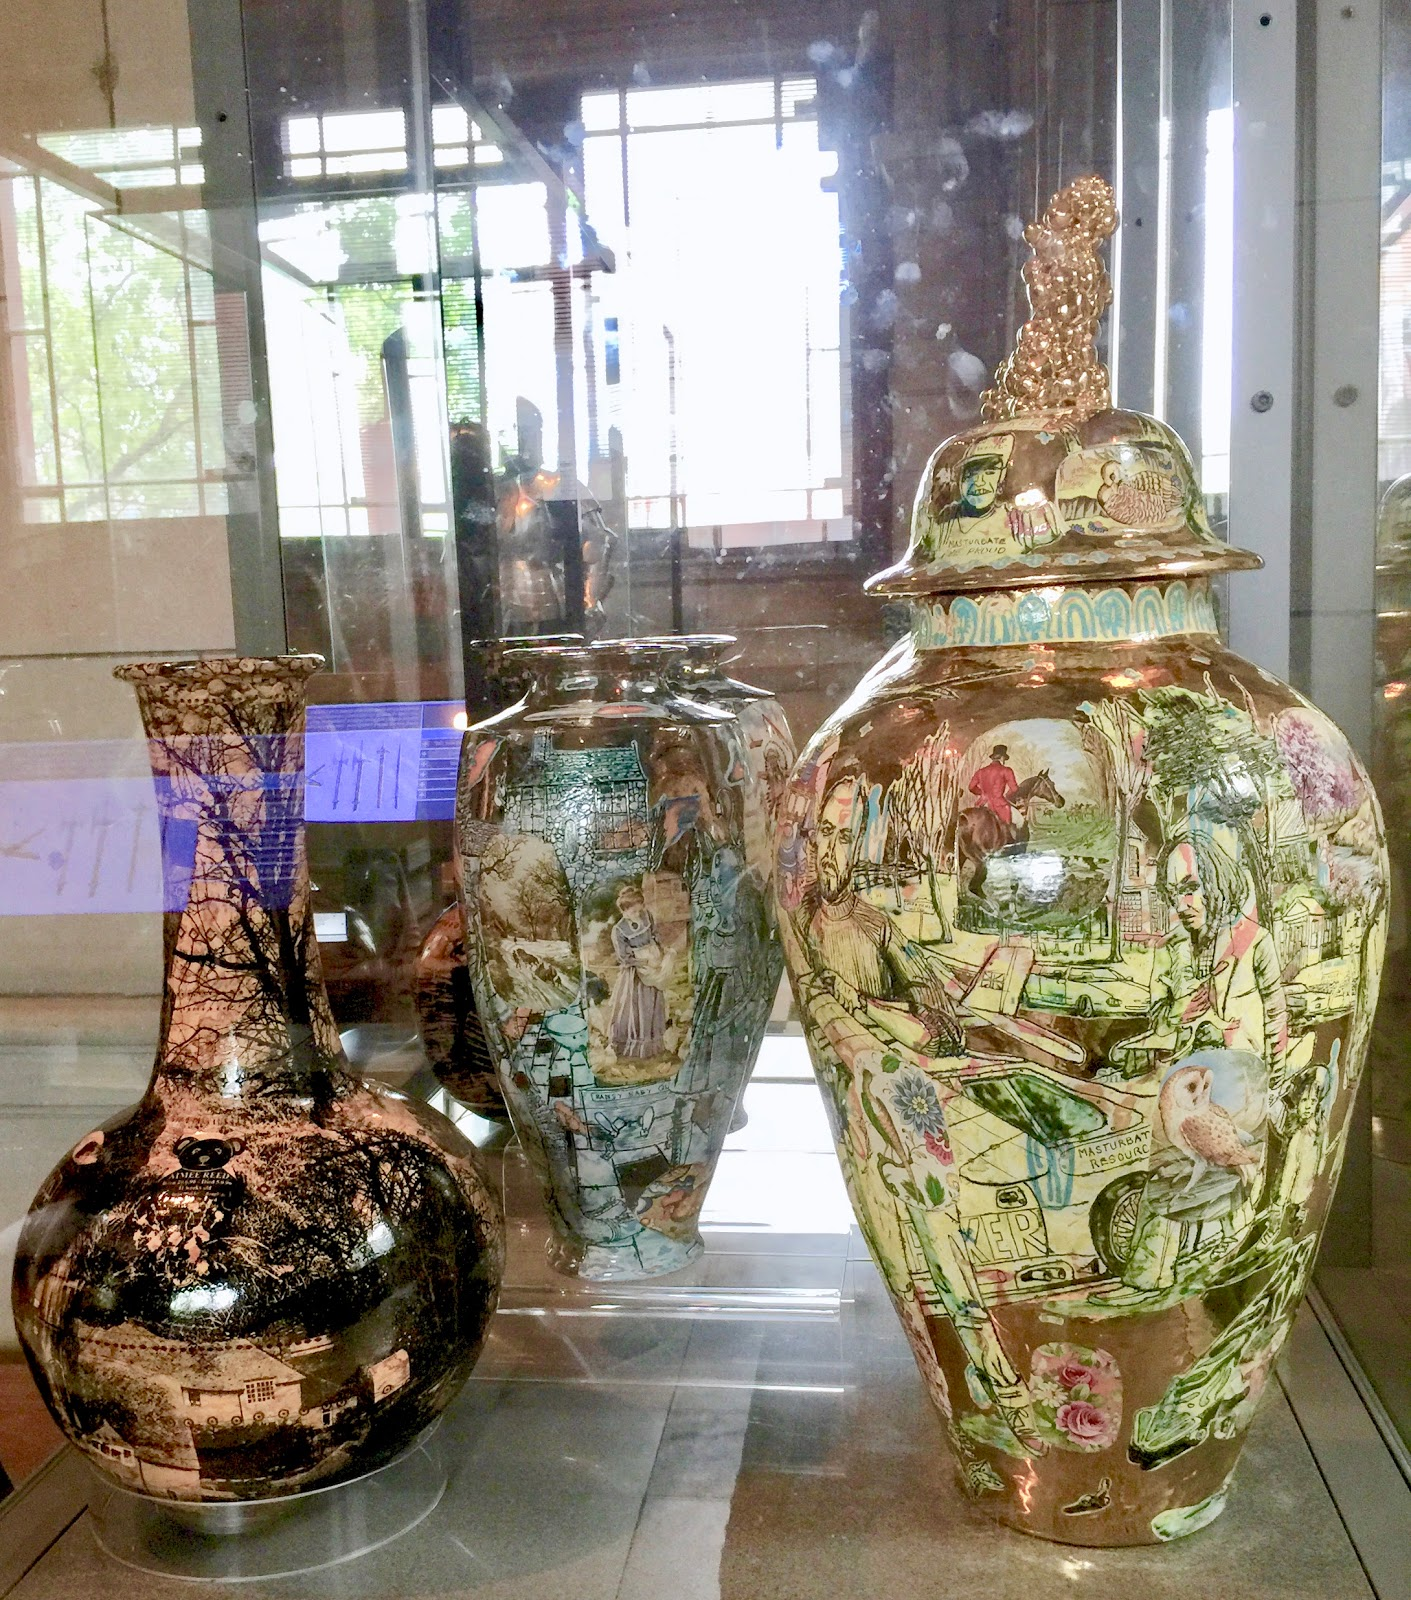 Mary mary quite contrary grayson perry pots in glasgow grayson perry pots in glasgow kelvingrove art gallery reviewsmspy